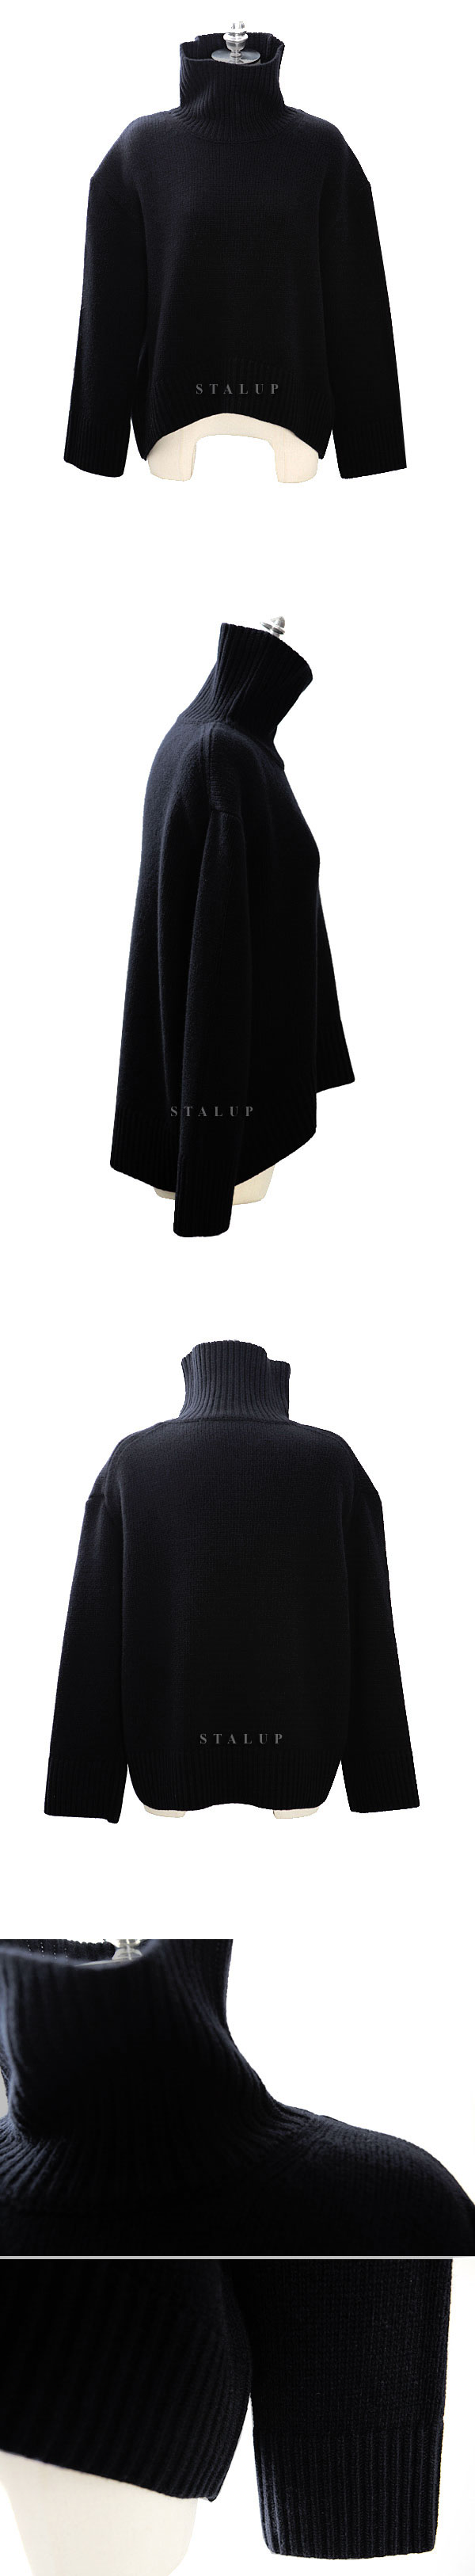 CELIN turtleneck